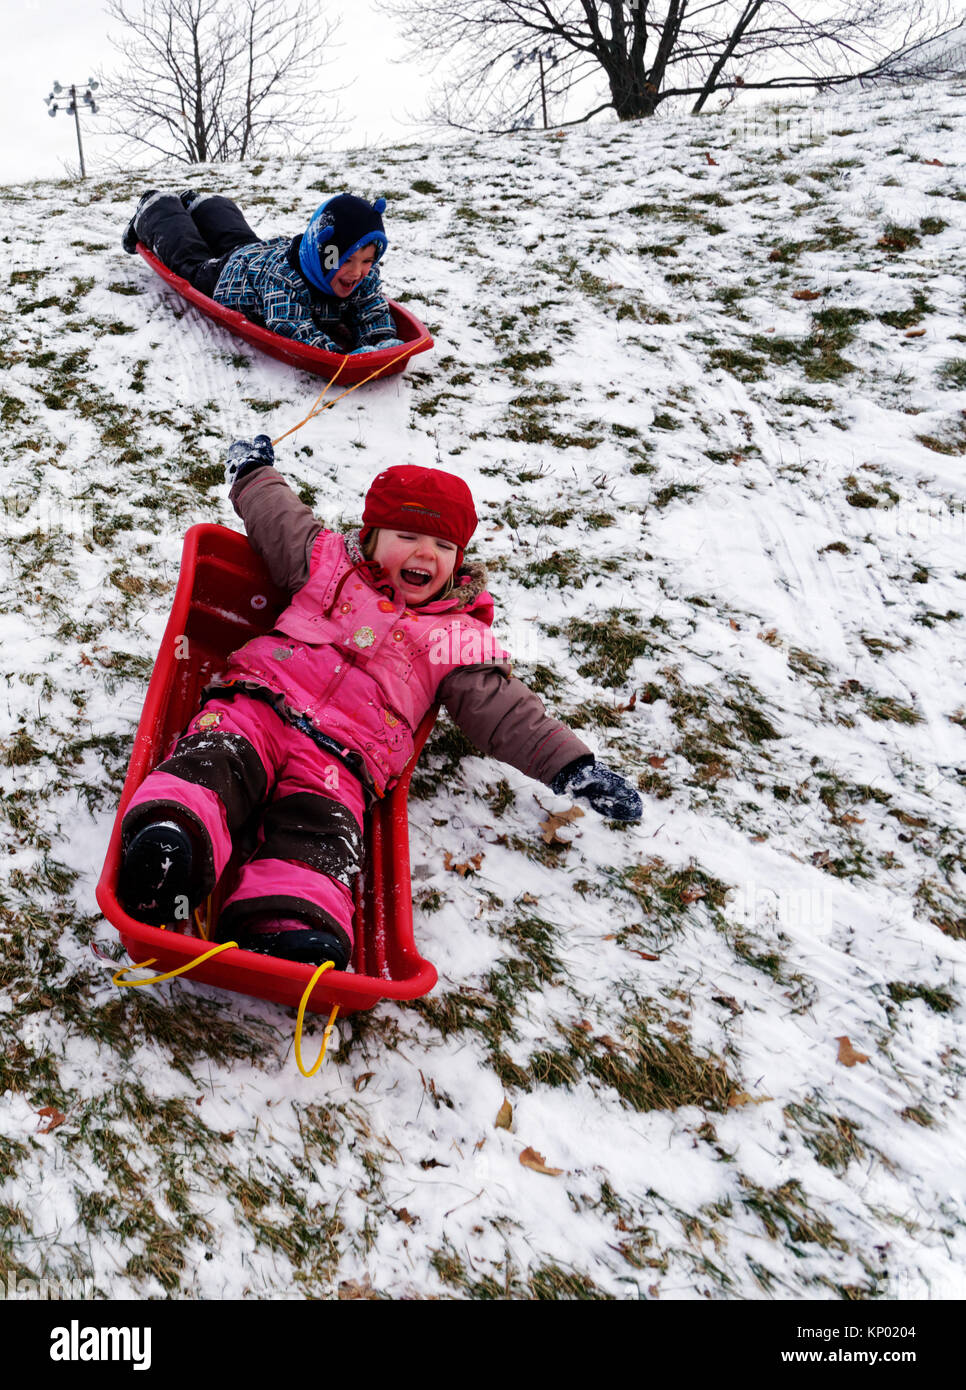 brother-and-sister-5-and-3-yrs-old-sledging-together-in-quebec-city-KP0204.jpg